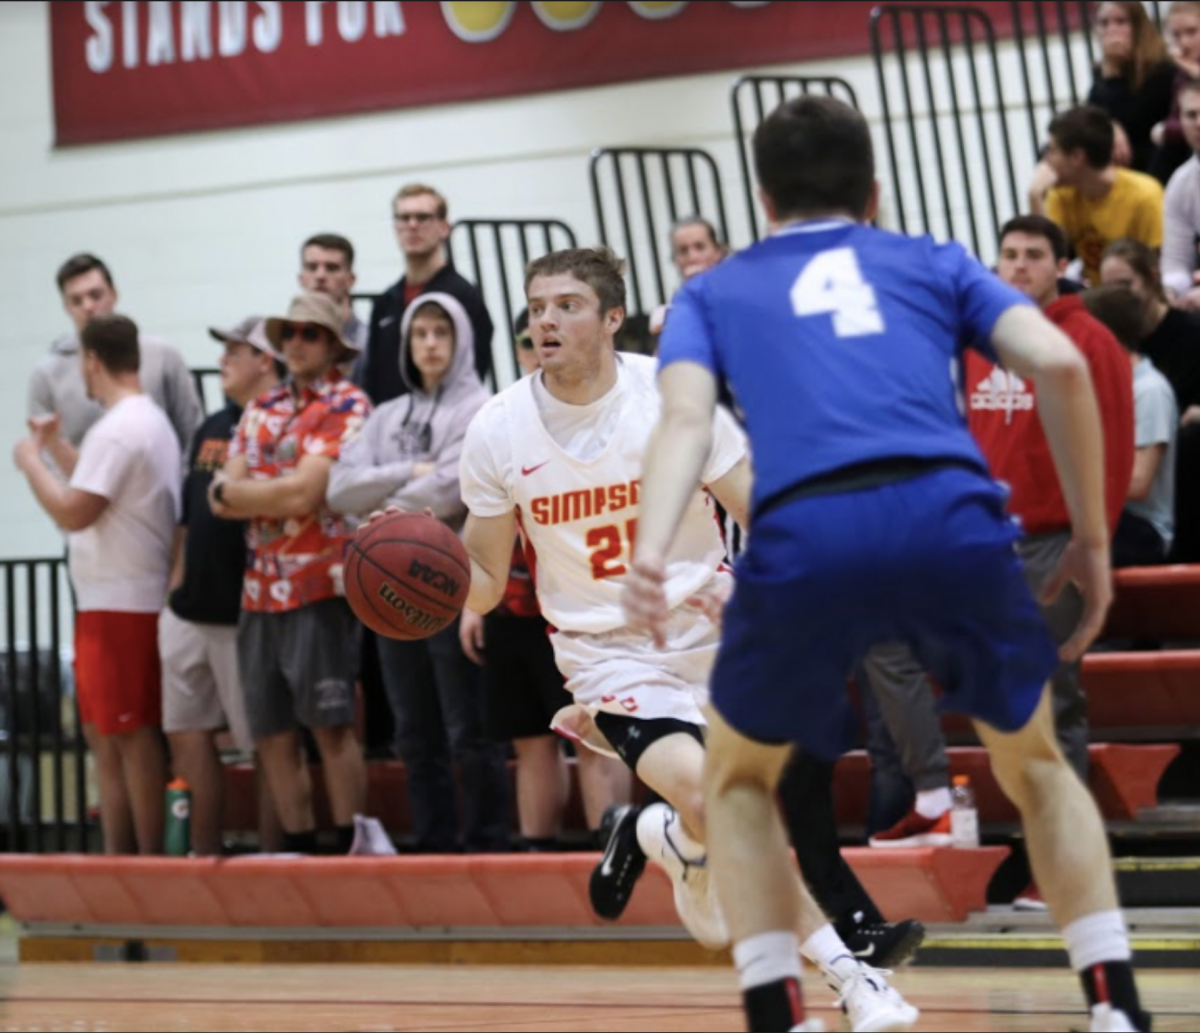 Junior Conor Riordan on the basketball court.